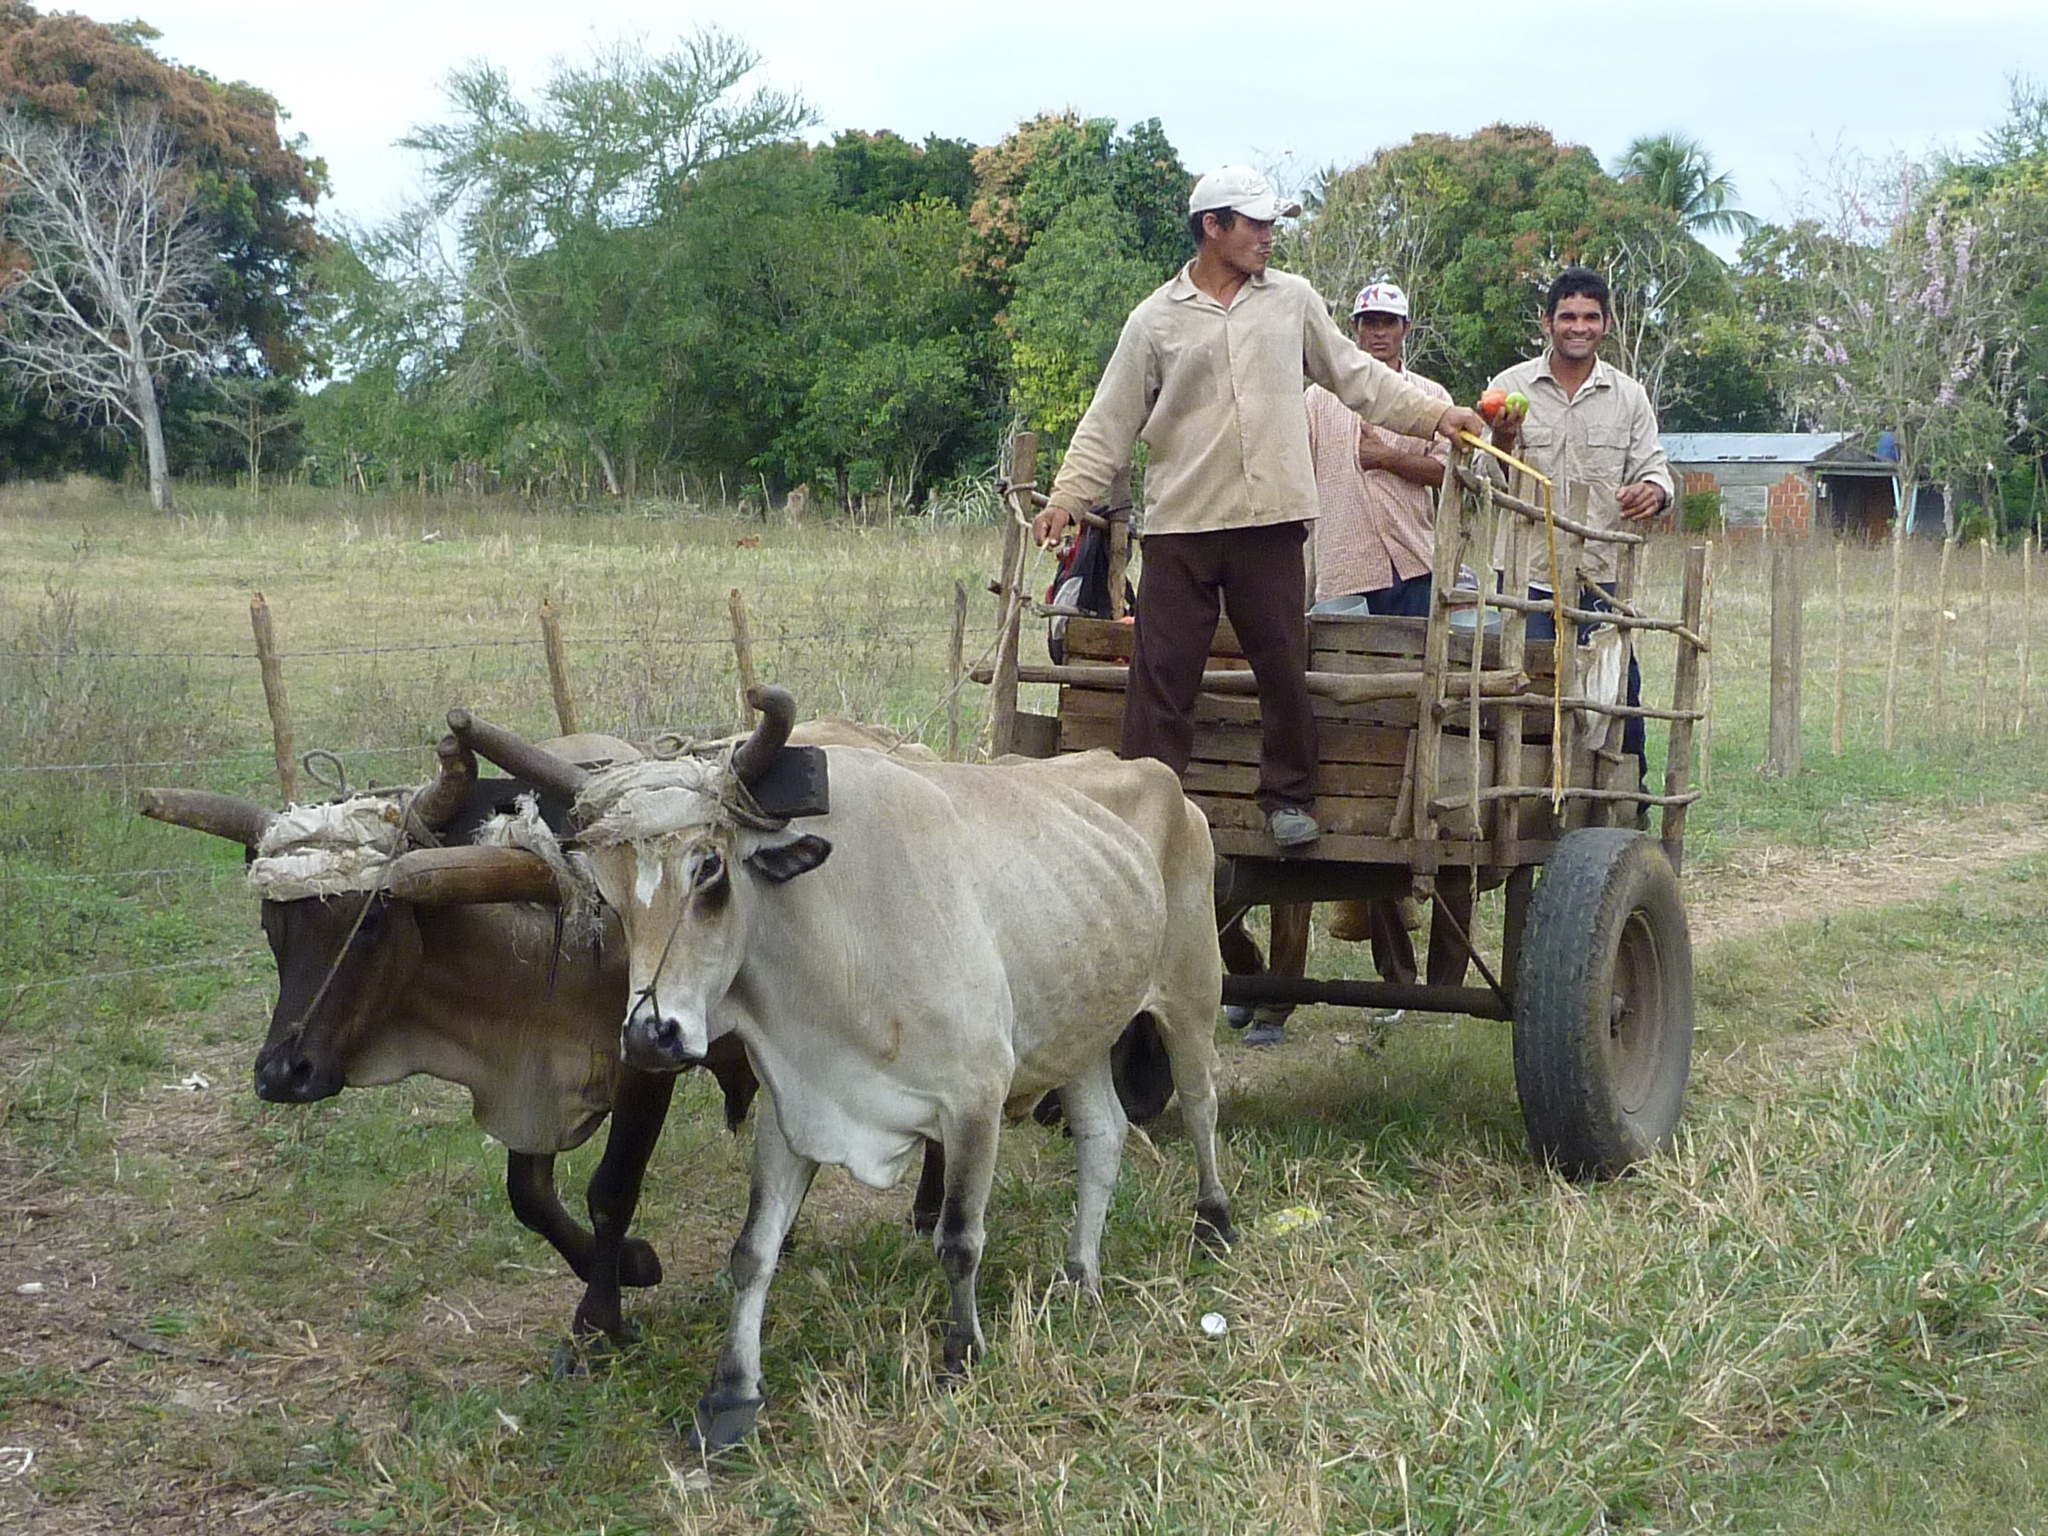 Cow Pulling Wagon : Ox